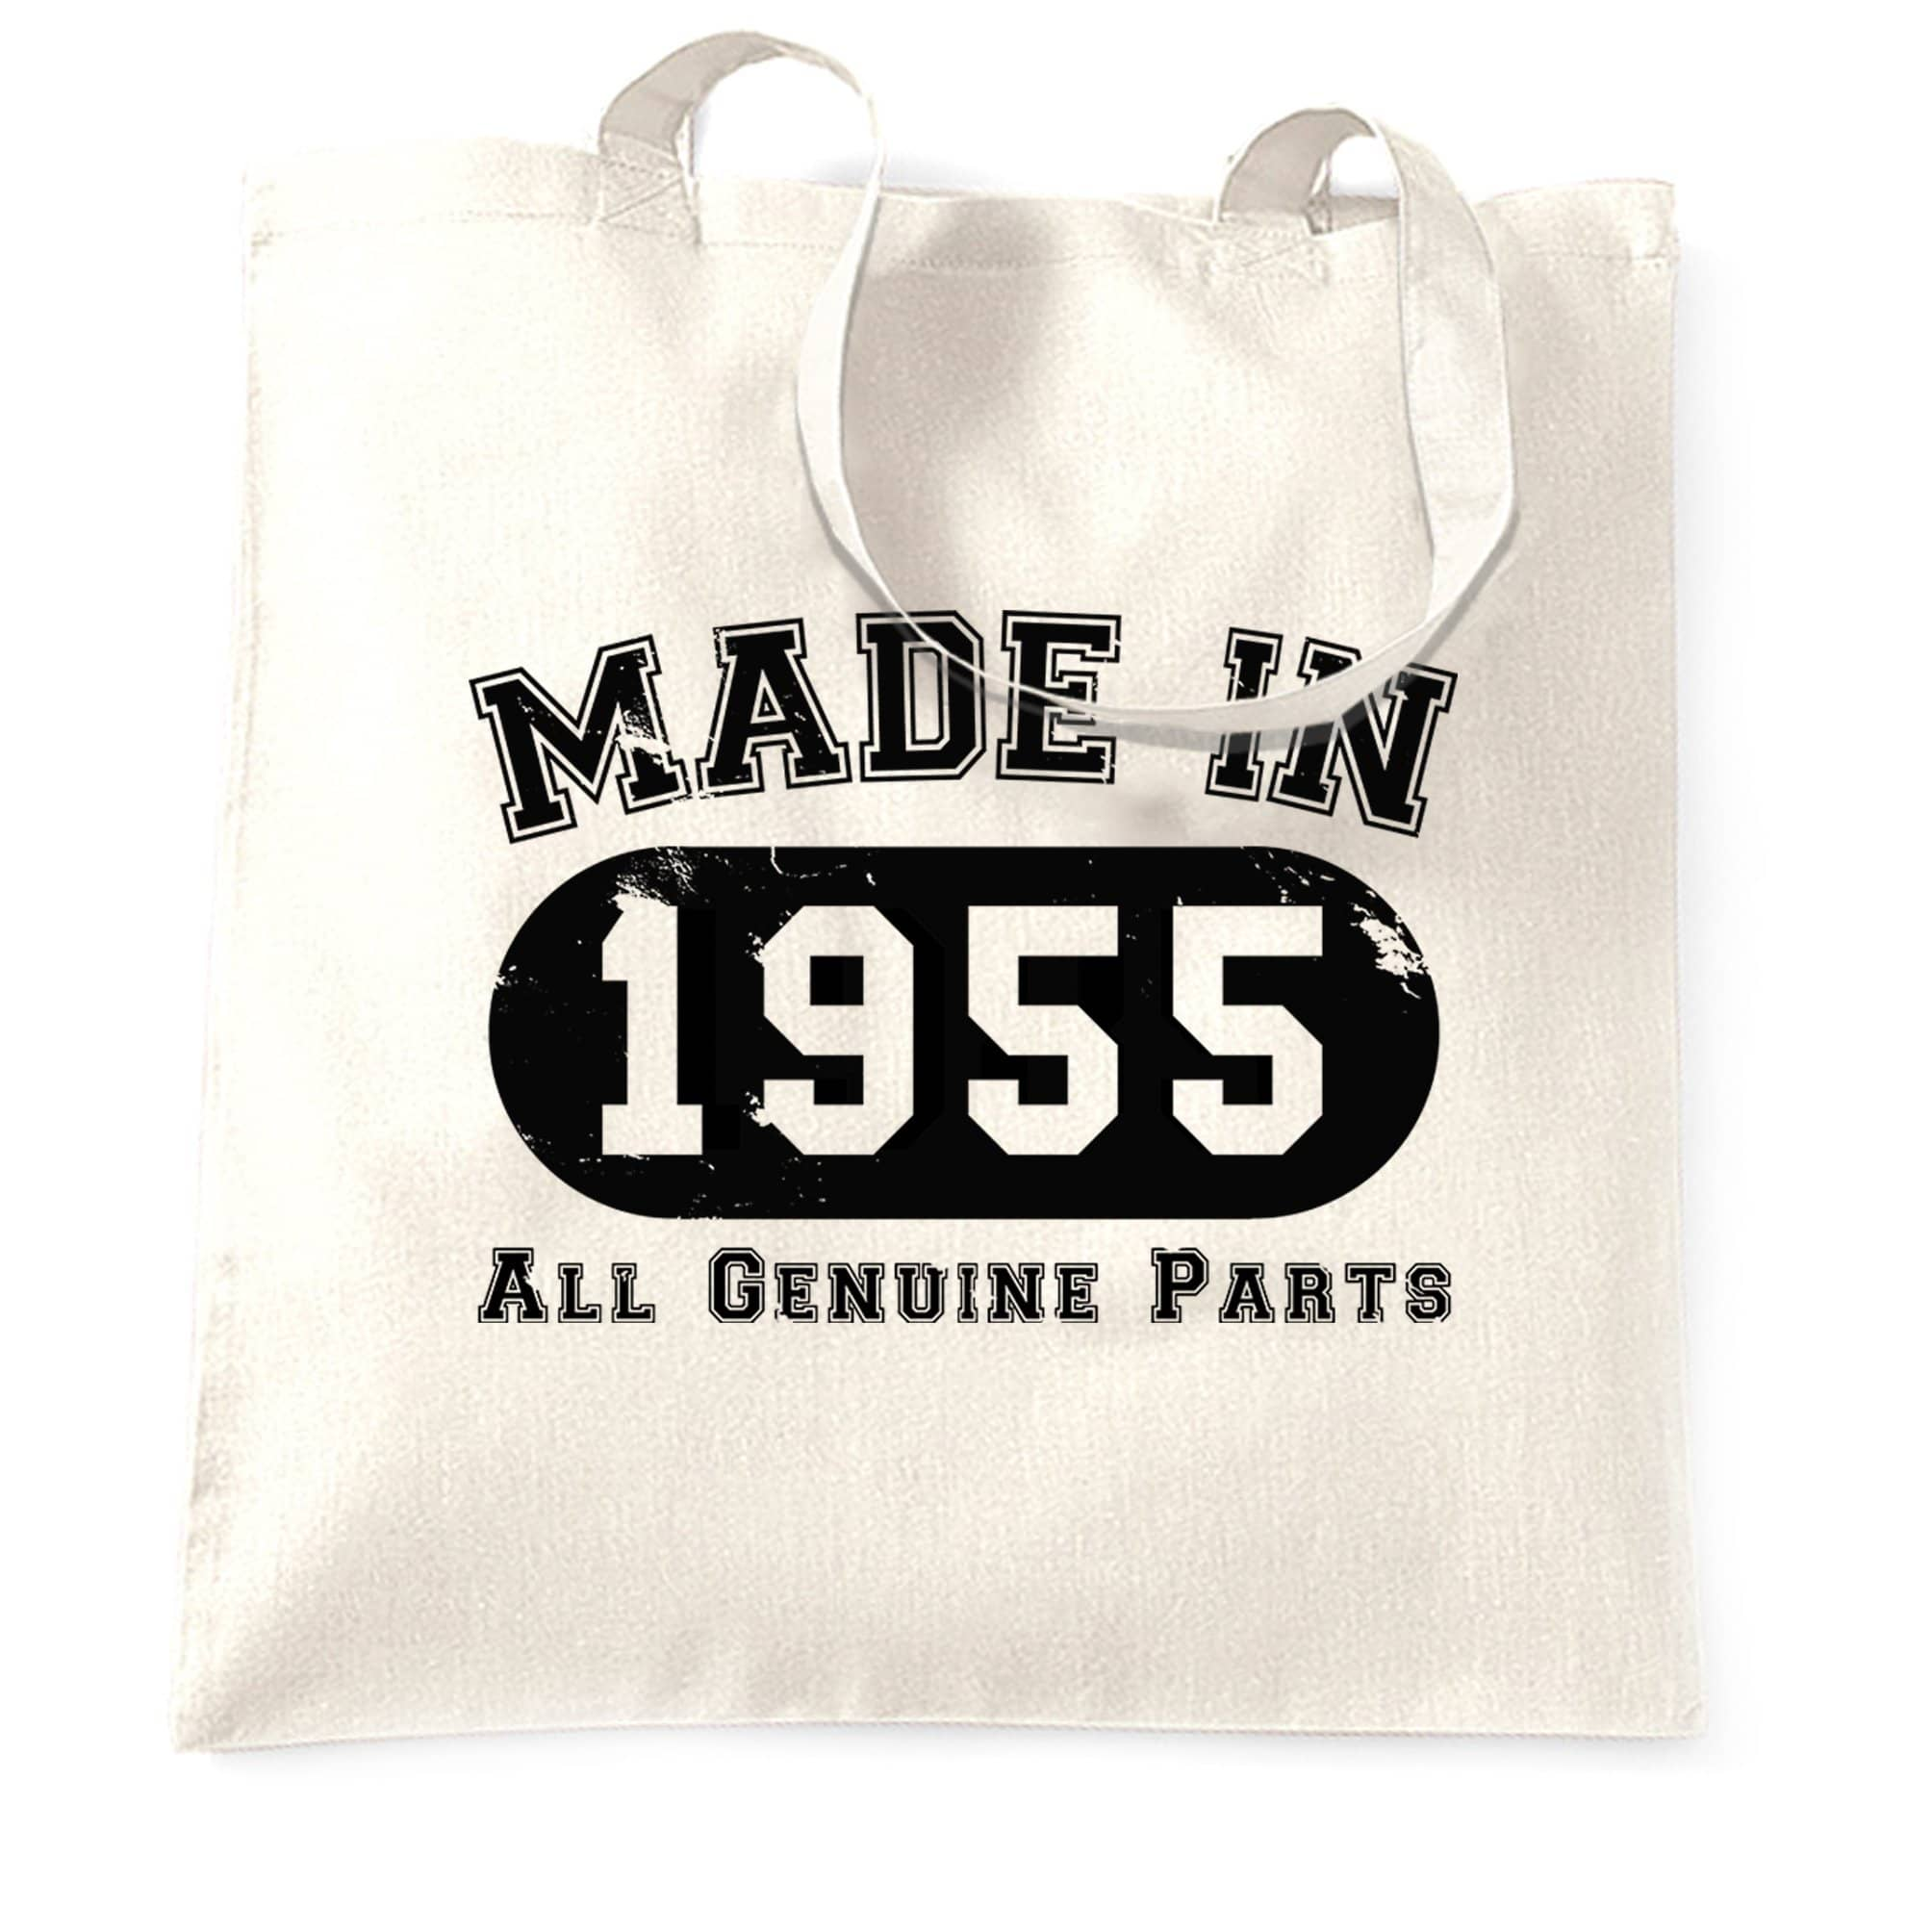 Birthday Tote Bag Made in 1955 All Genuine Parts